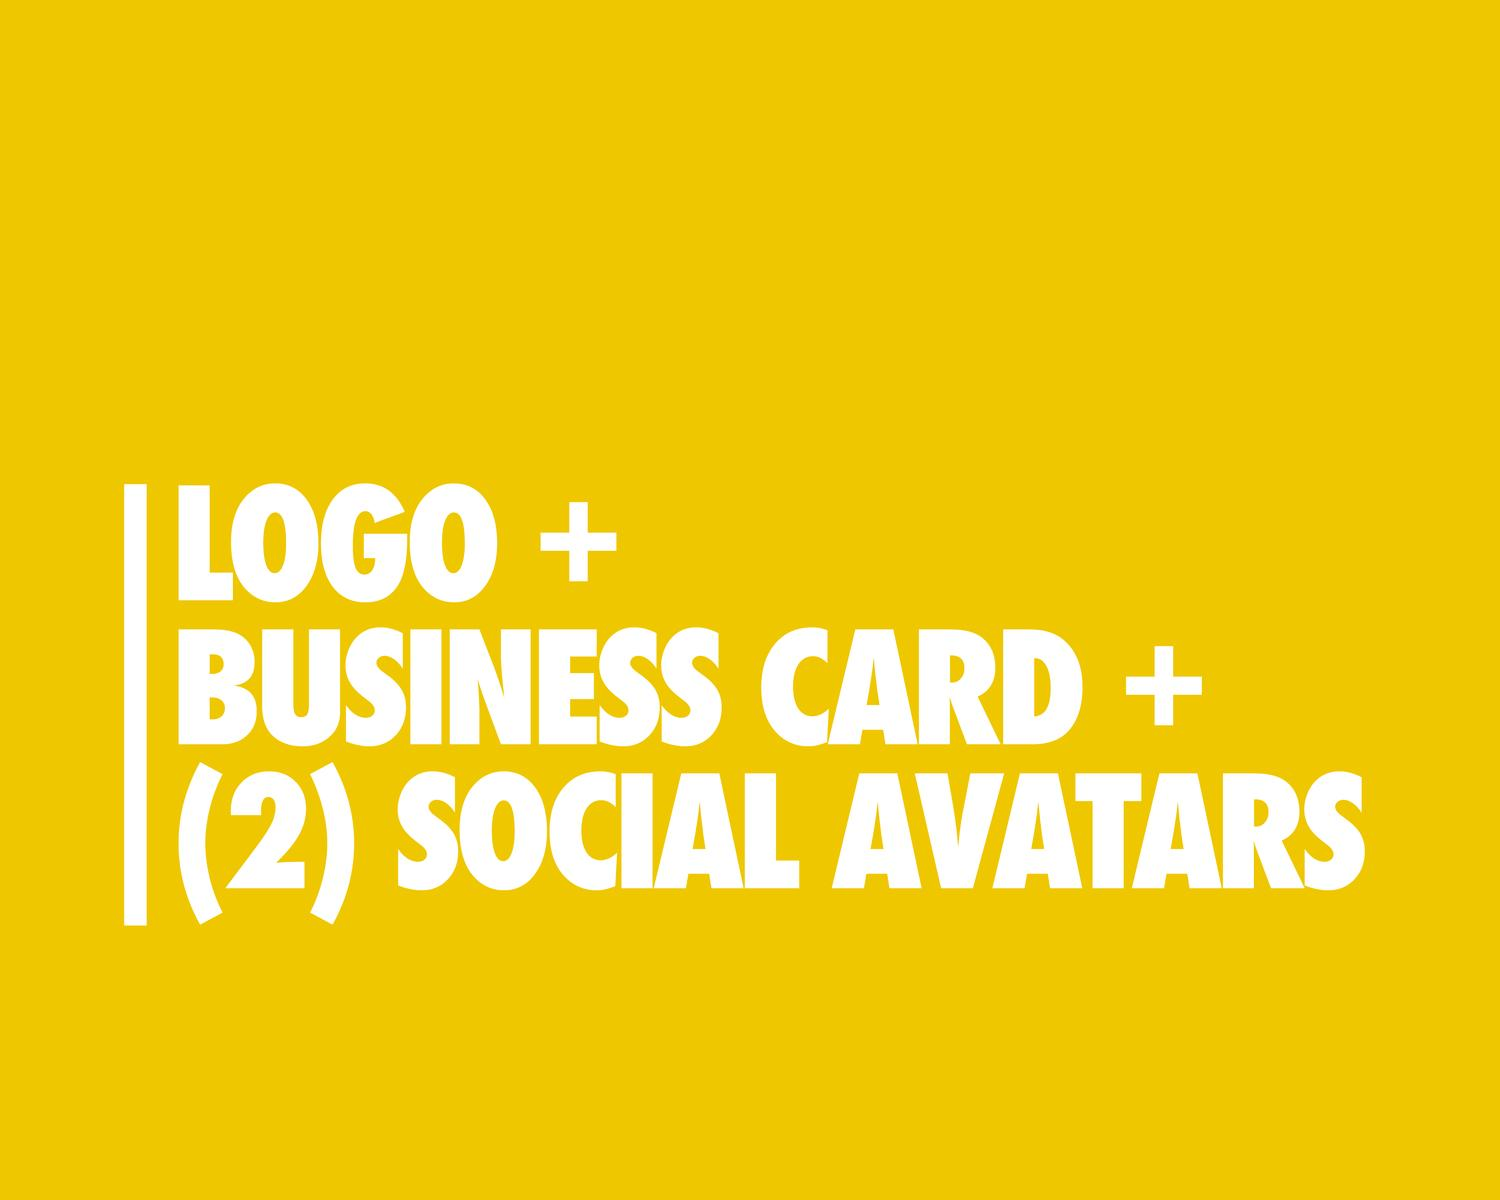 Logo With Business Card and Social Media Avatar by eDesignsCompany - 97275